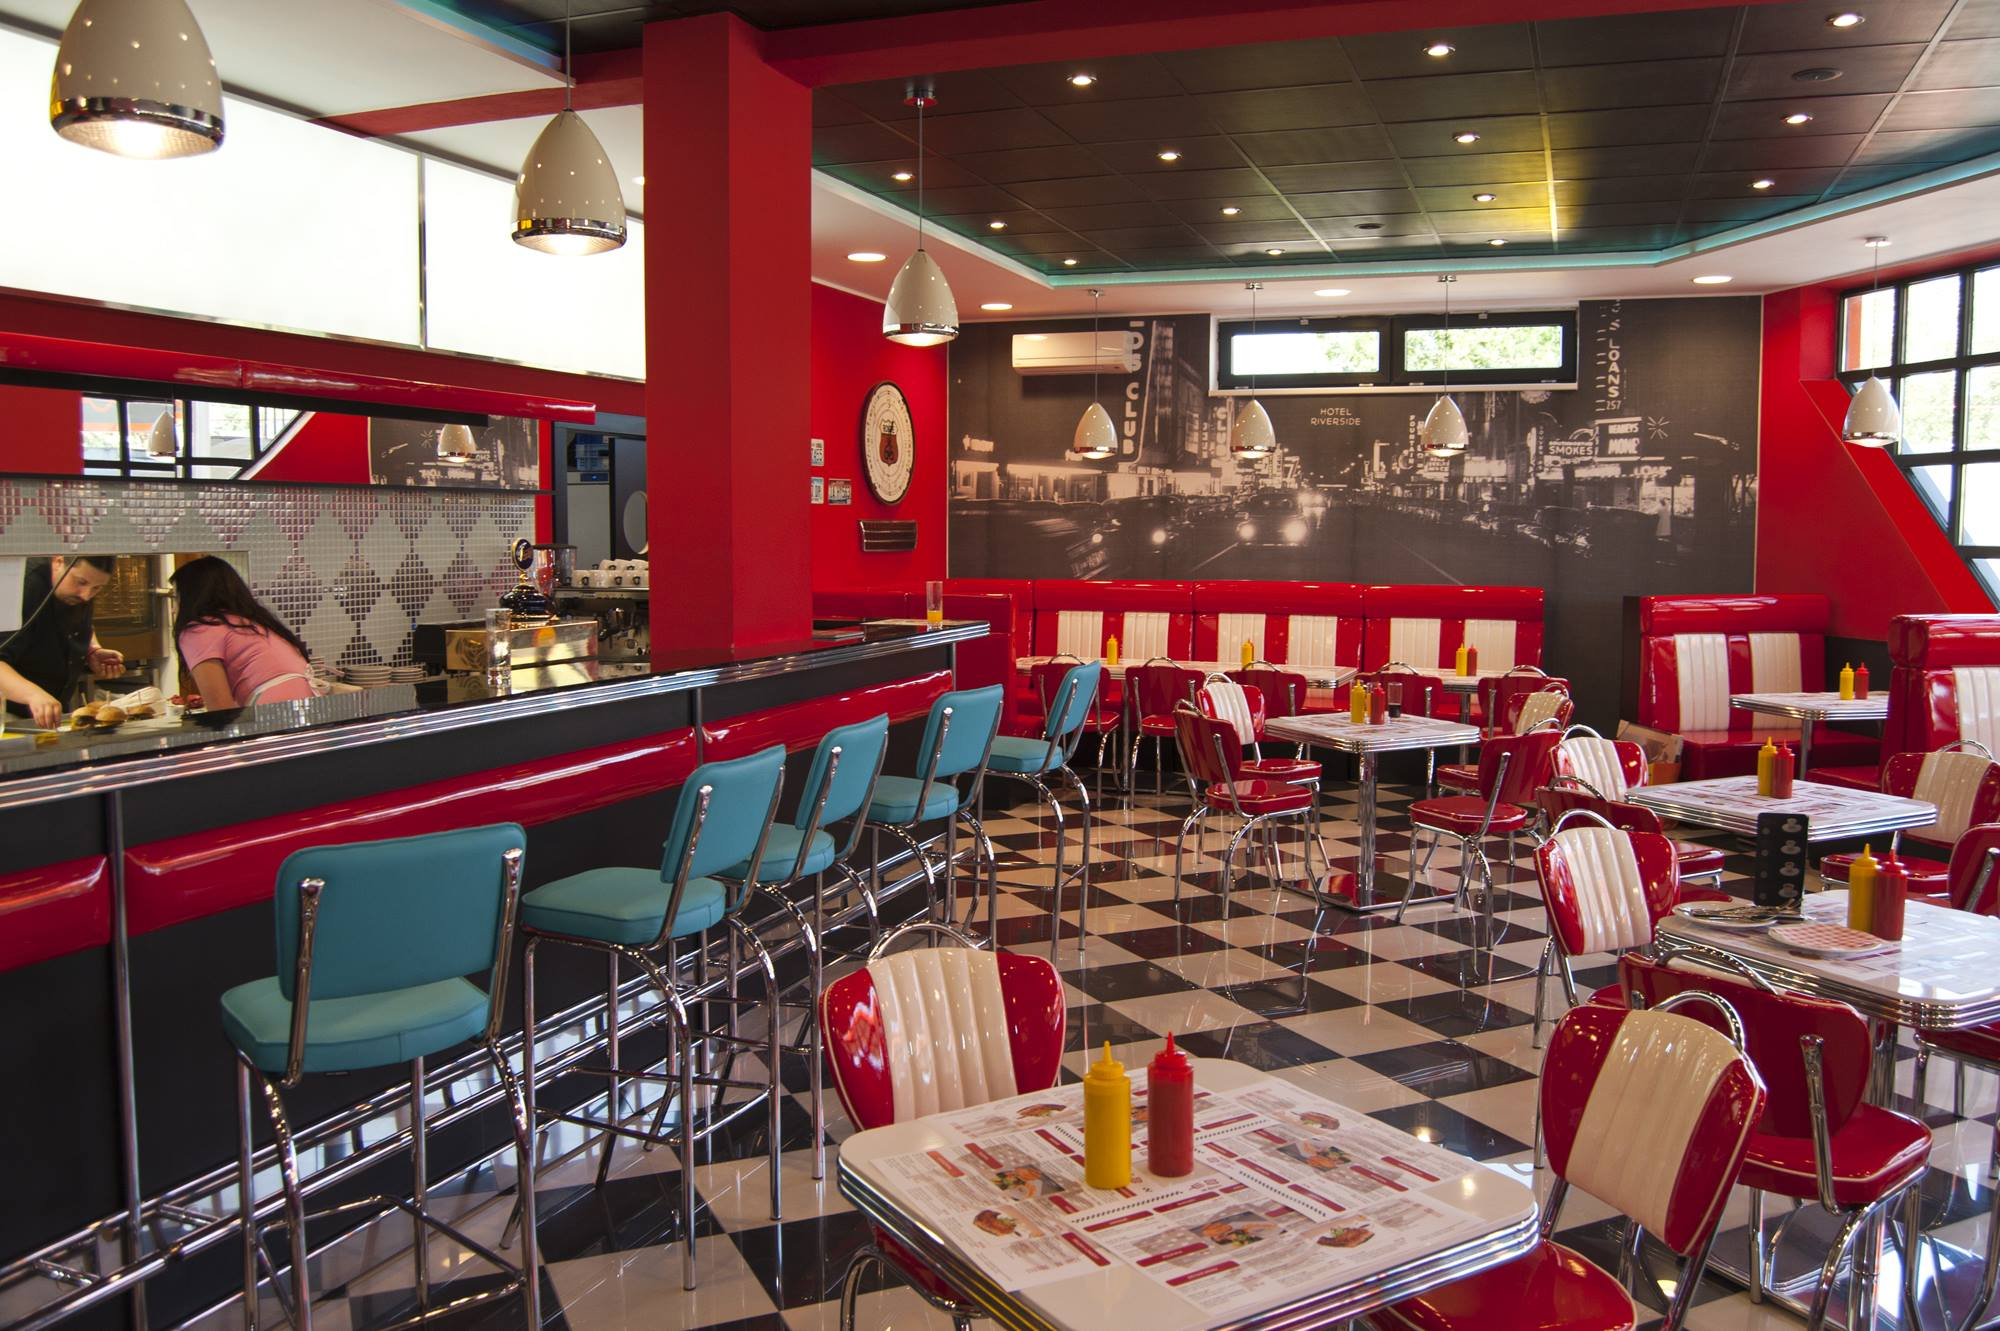 Restaurant Diner Booth With Headrest Used In Retro Or